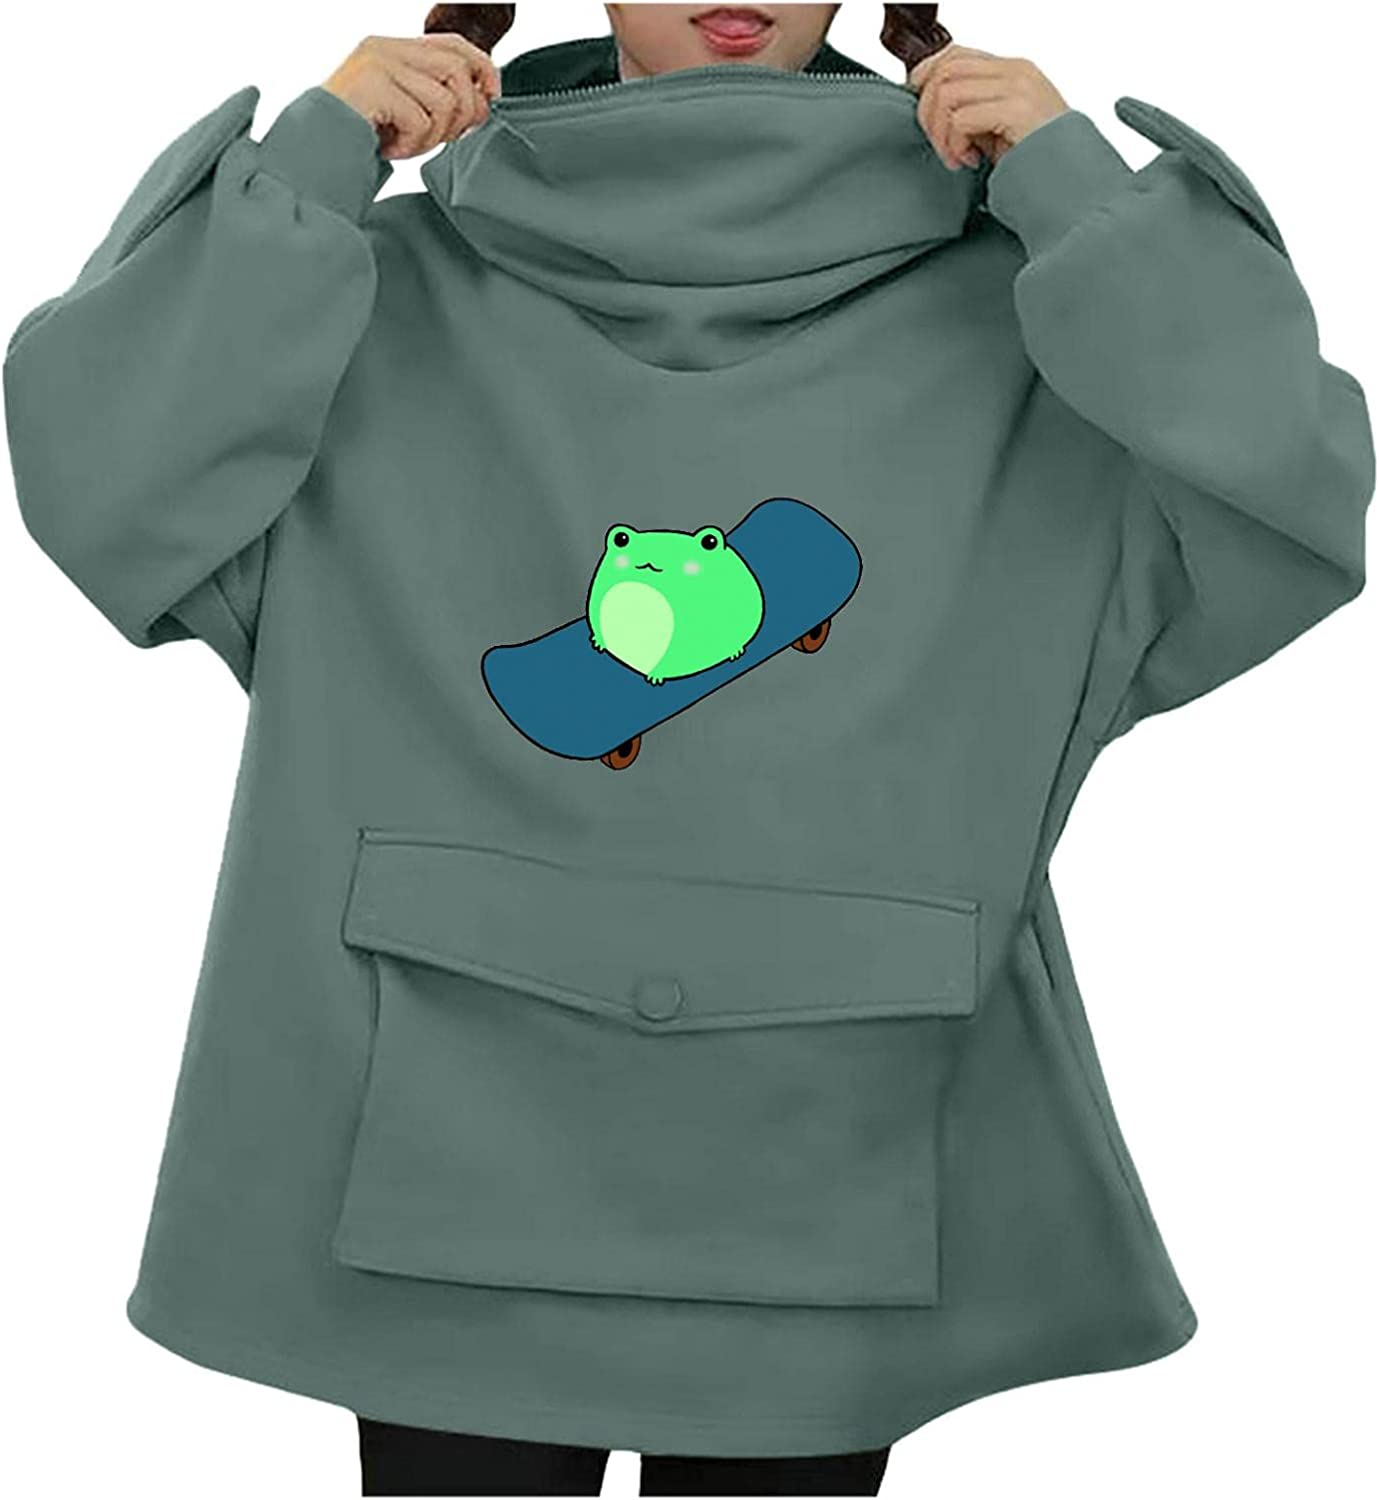 Haheyrte Cute Hoodies for Women Stitching Cute Cartoon Frog Long Sleeve With Pockets Sweatershirts Casual Tops Sweaters